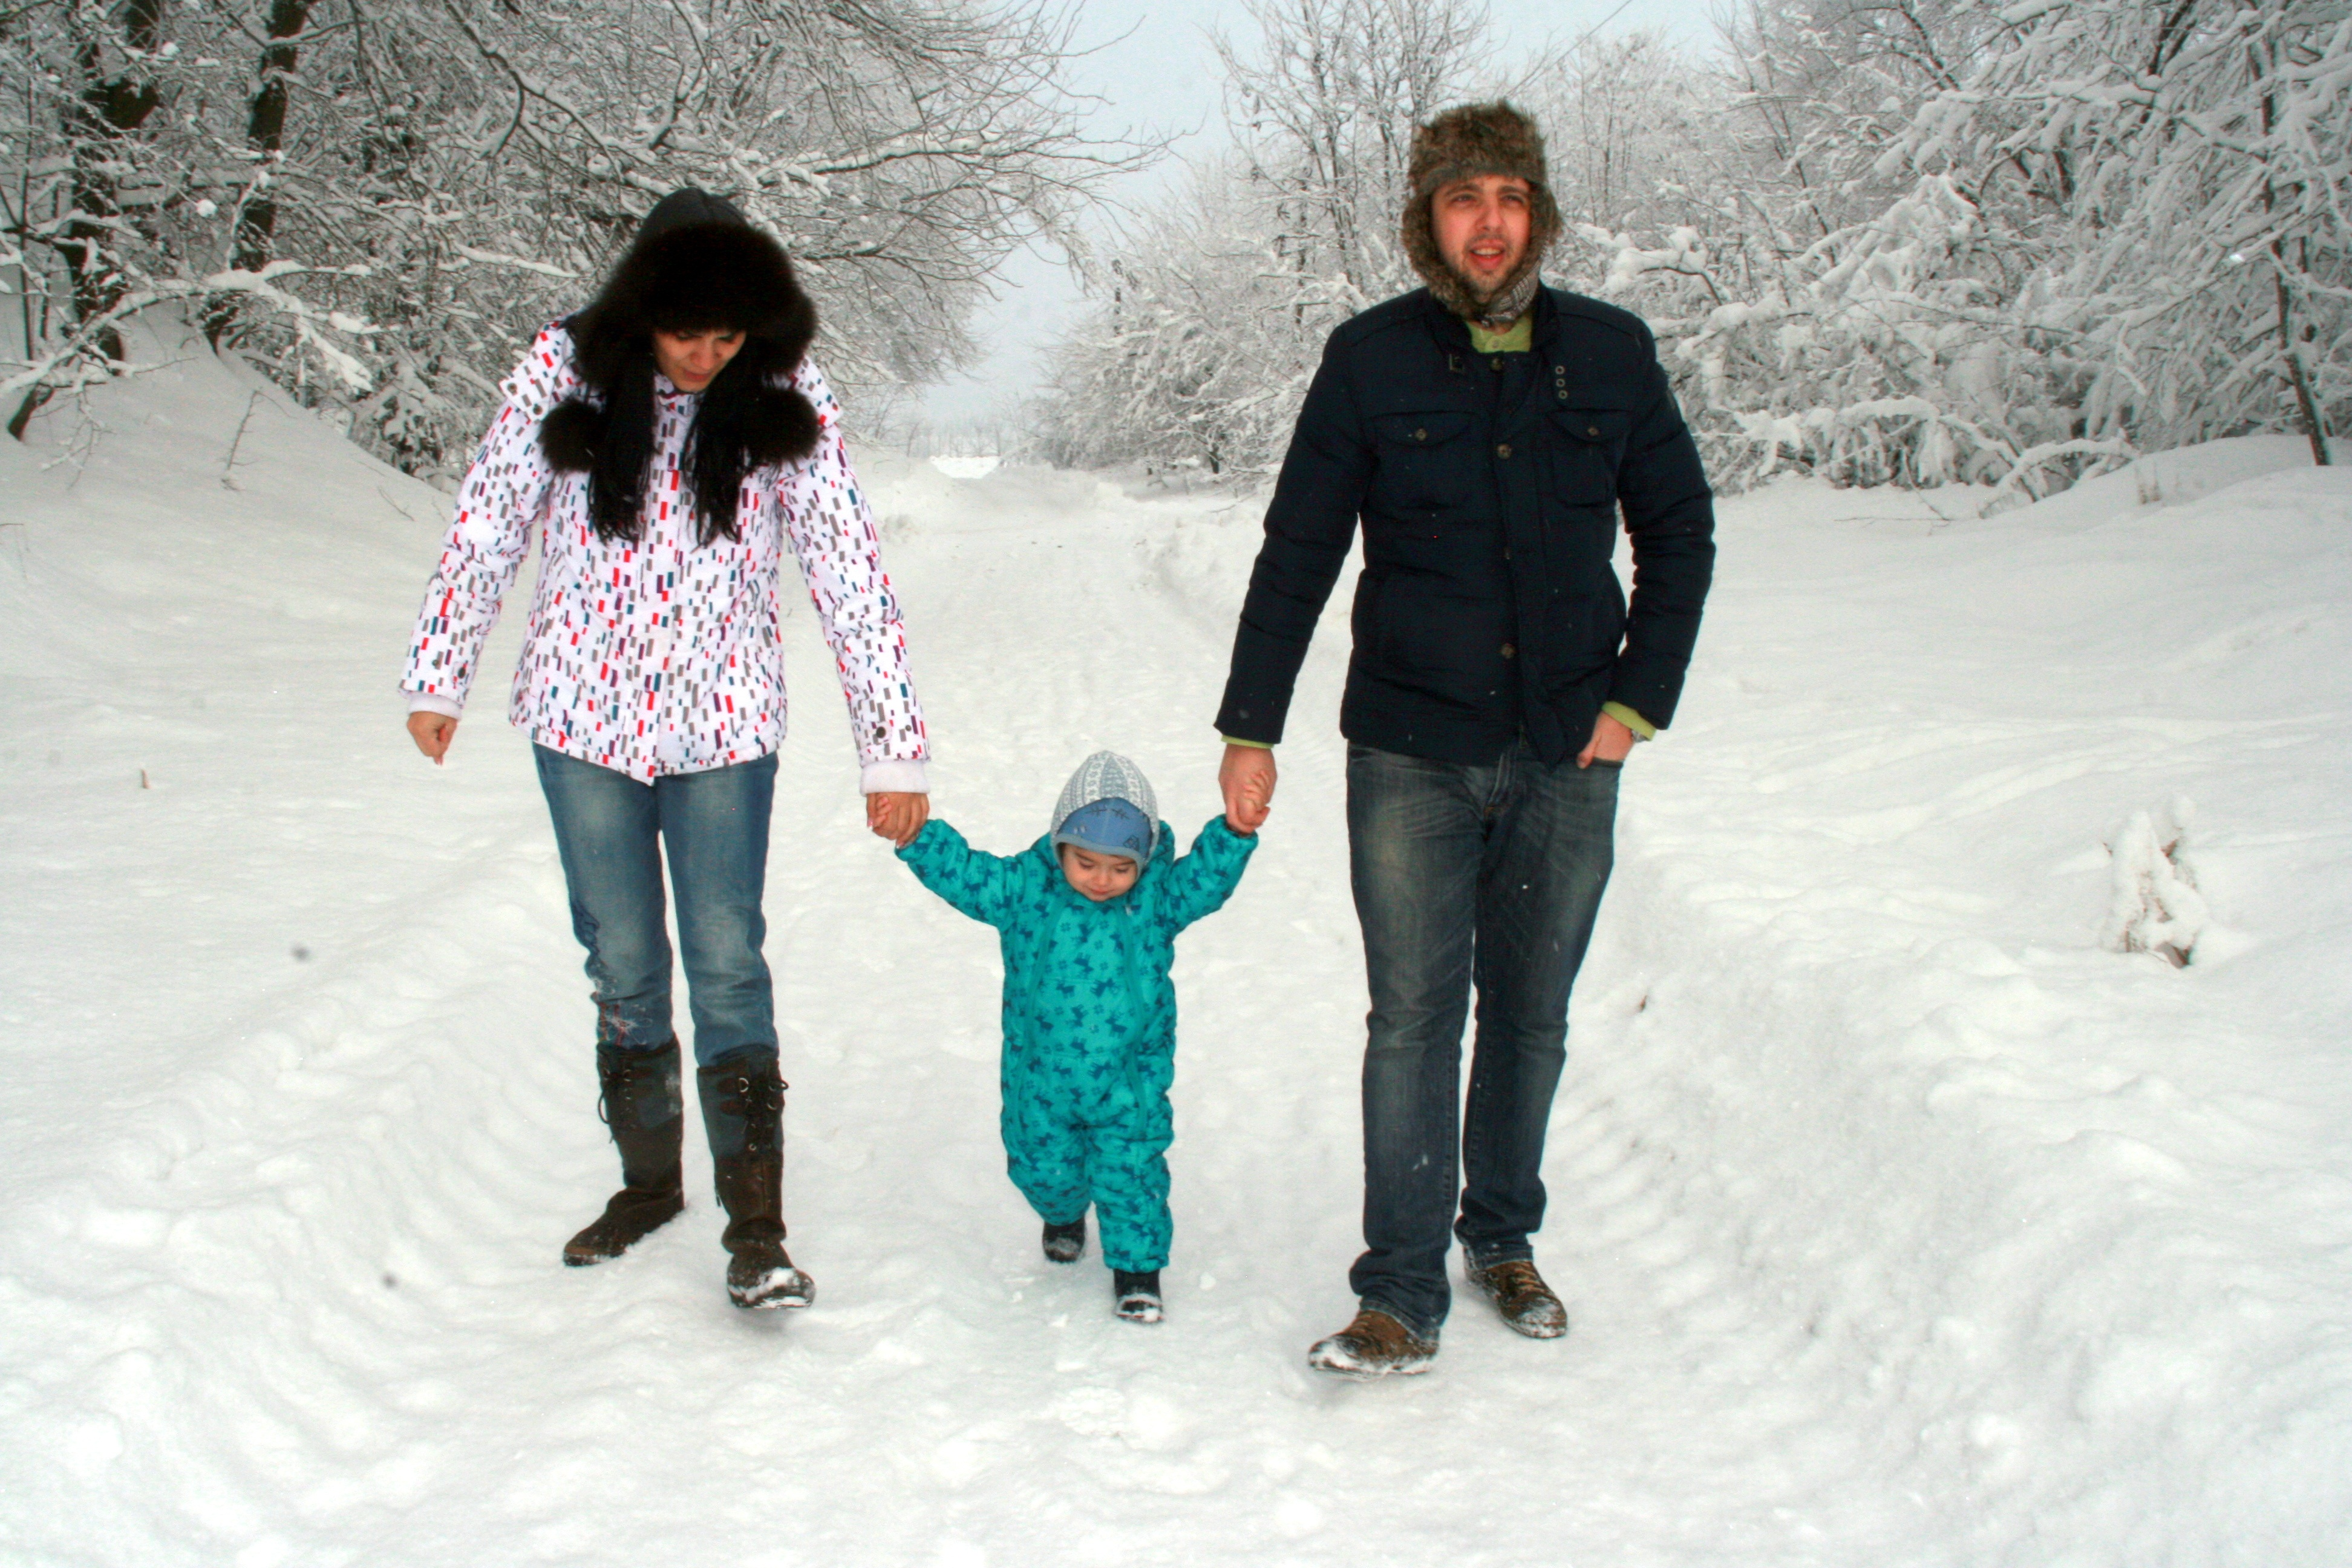 Family in Winter, Child, Family, Ice, Kid, HQ Photo